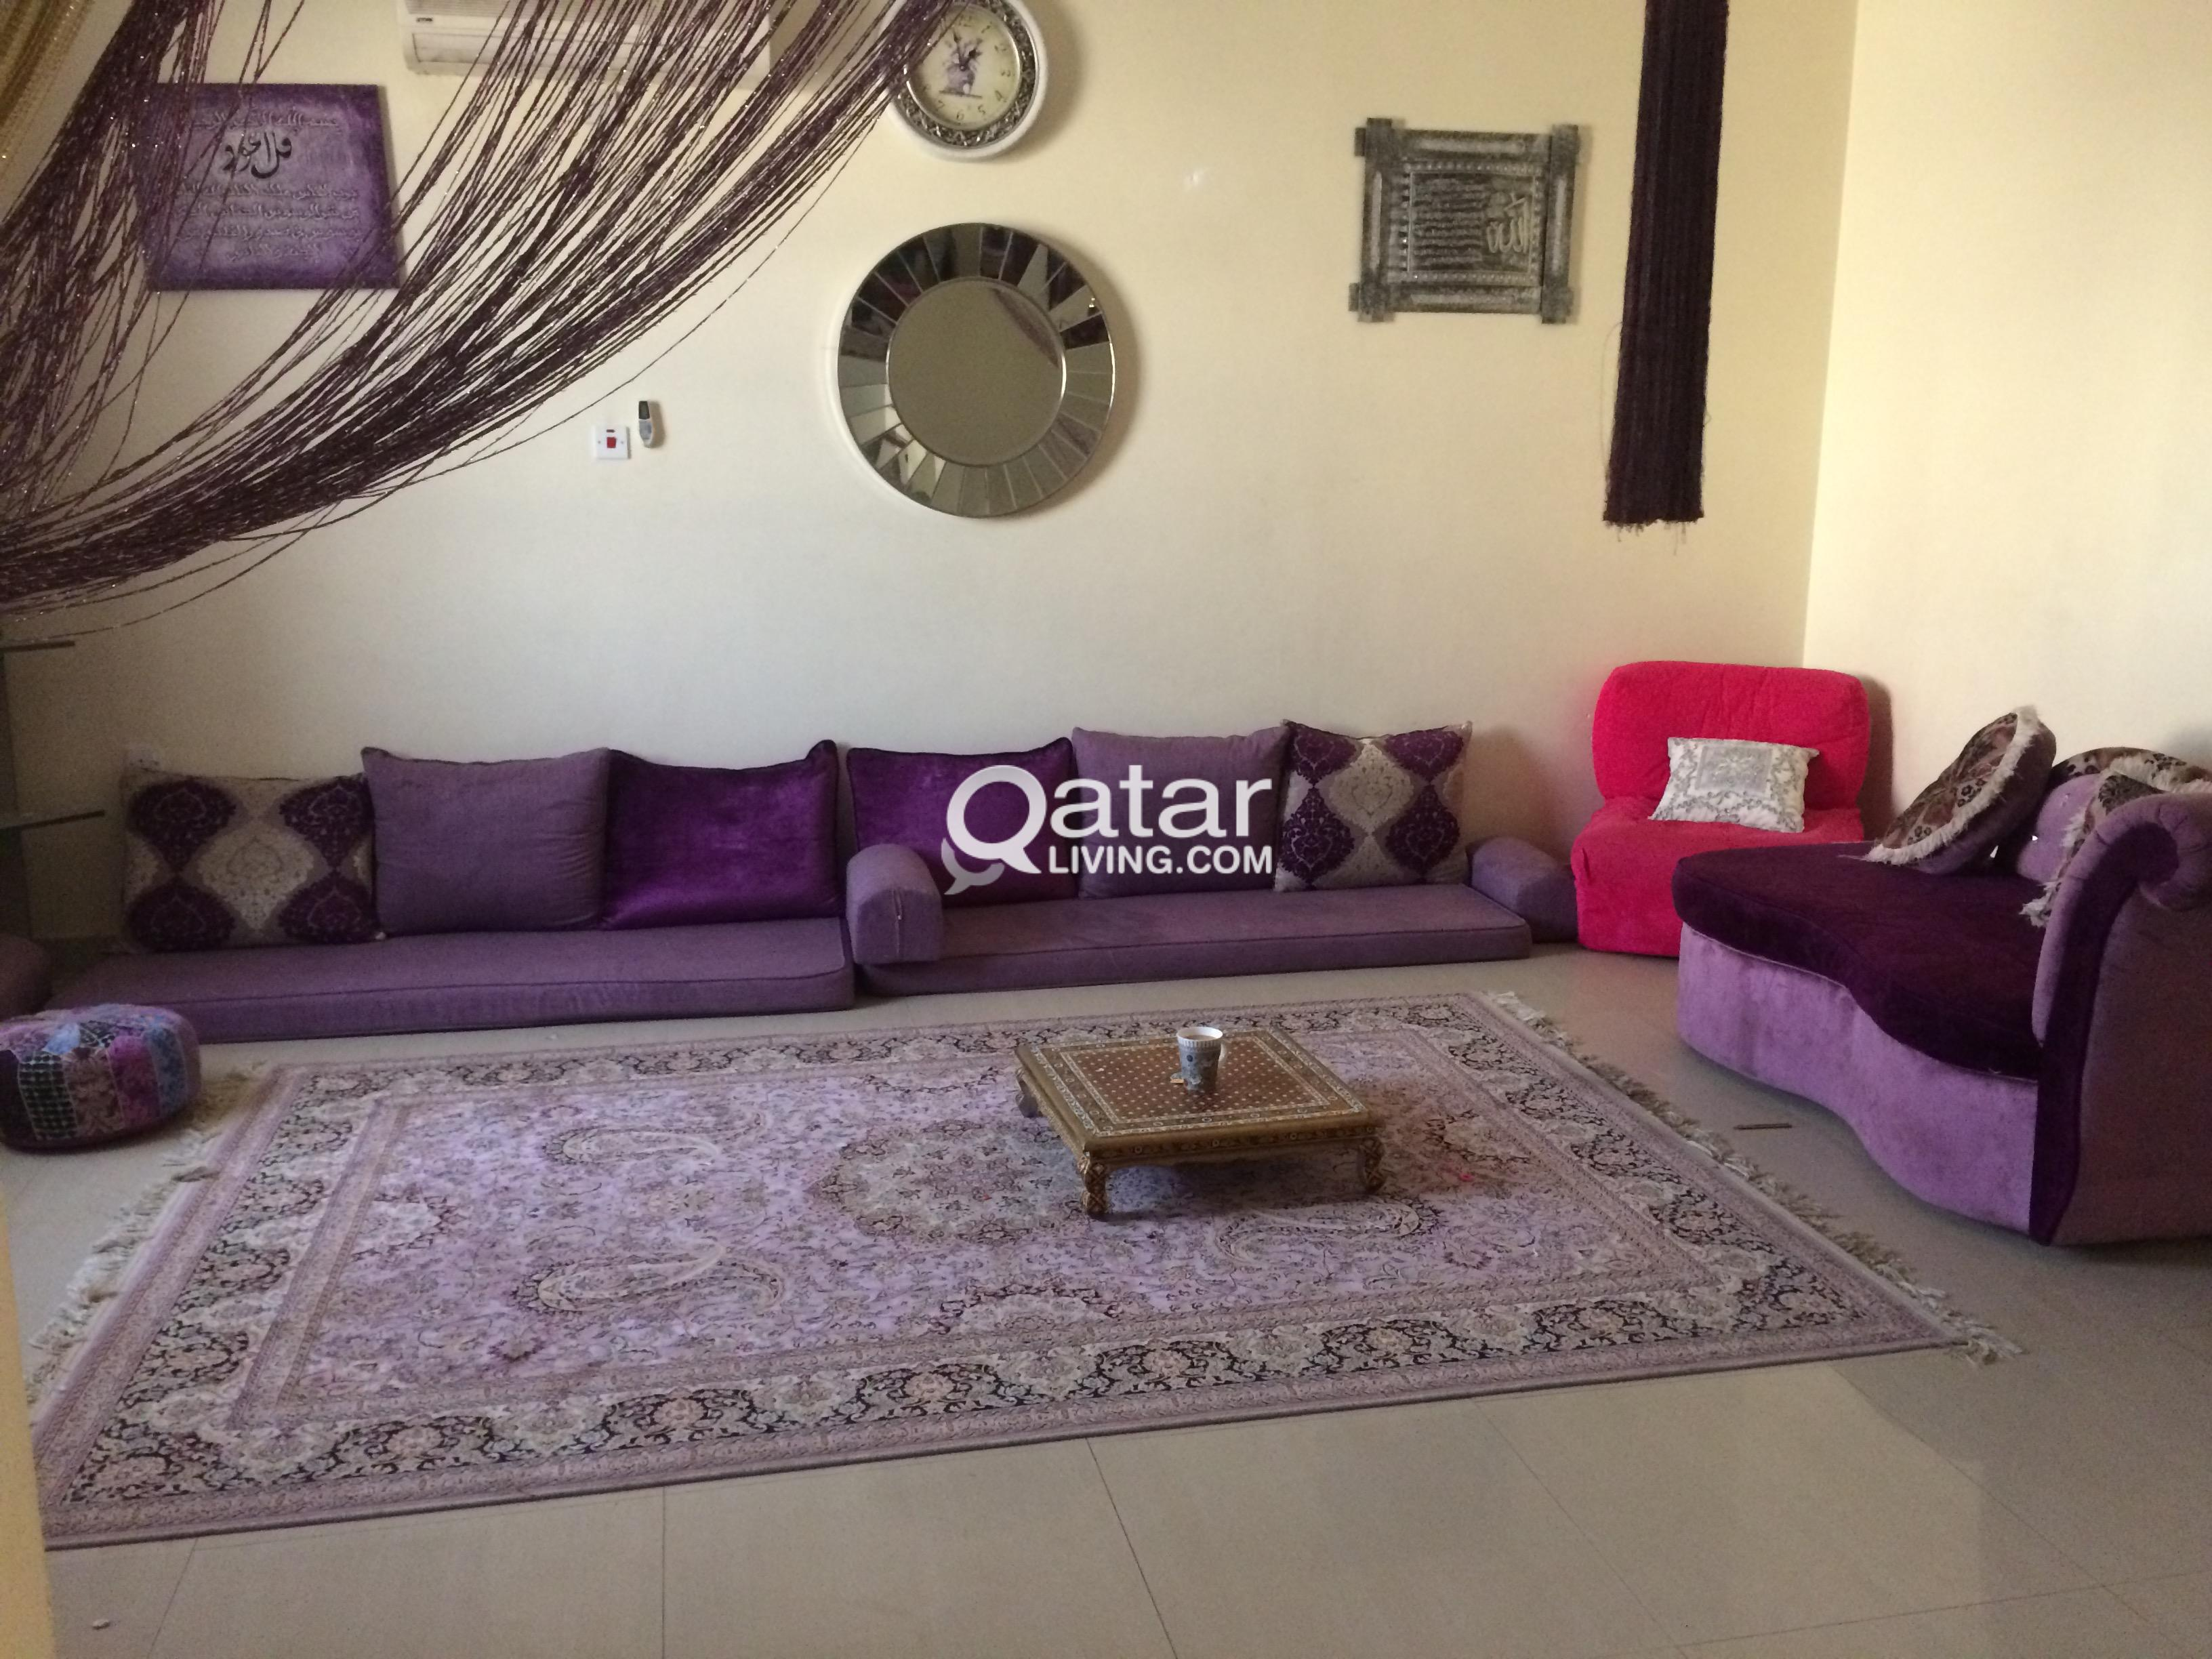 Sofa and gold tables Majlis set | Qatar Living